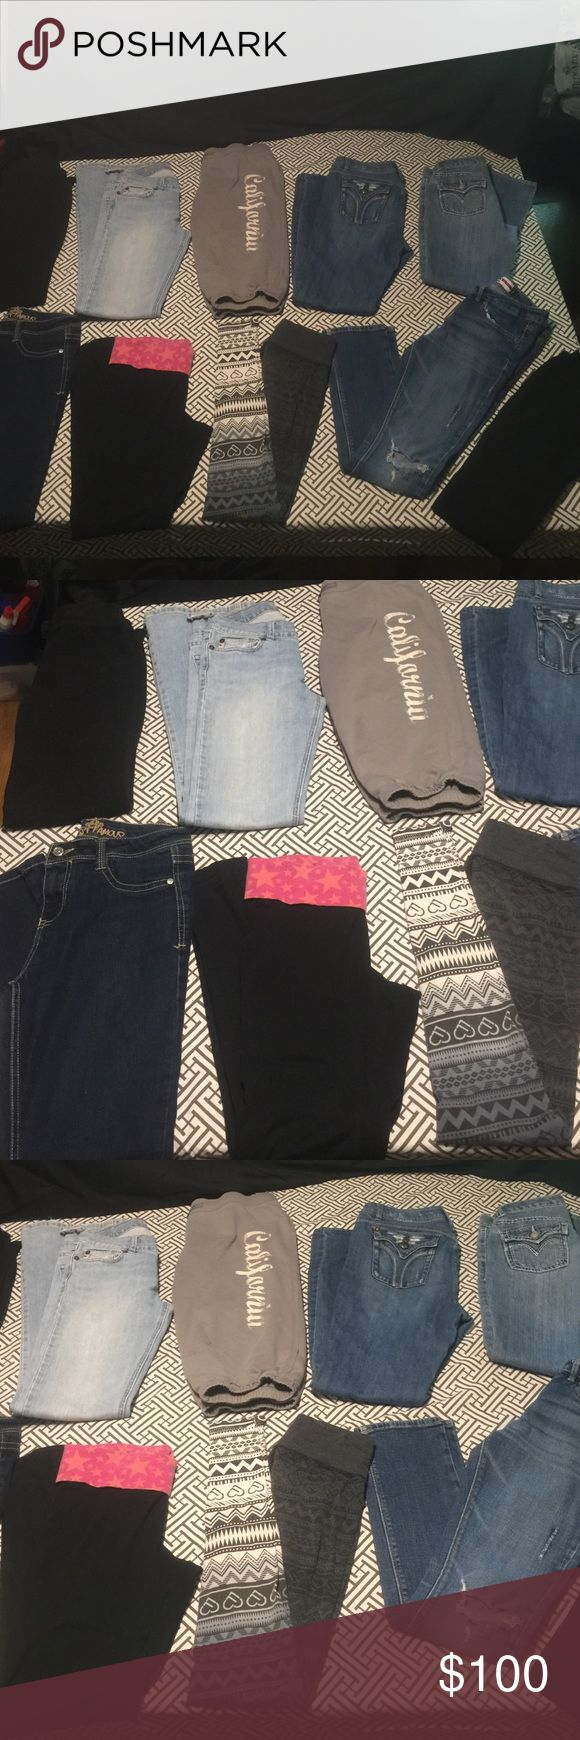 Girls Sz 14/16 10 pc pant/jeans bundle Most are in excellent condition a few have been worn quite a bit and do have a couple flaws brands include Levi, denizen by Levi, candies, Abercrombie, live love dream by Aeropostale, almost famous, children's place etc. most skinny/ straight leg also a few bootcut, Levi's Jeans